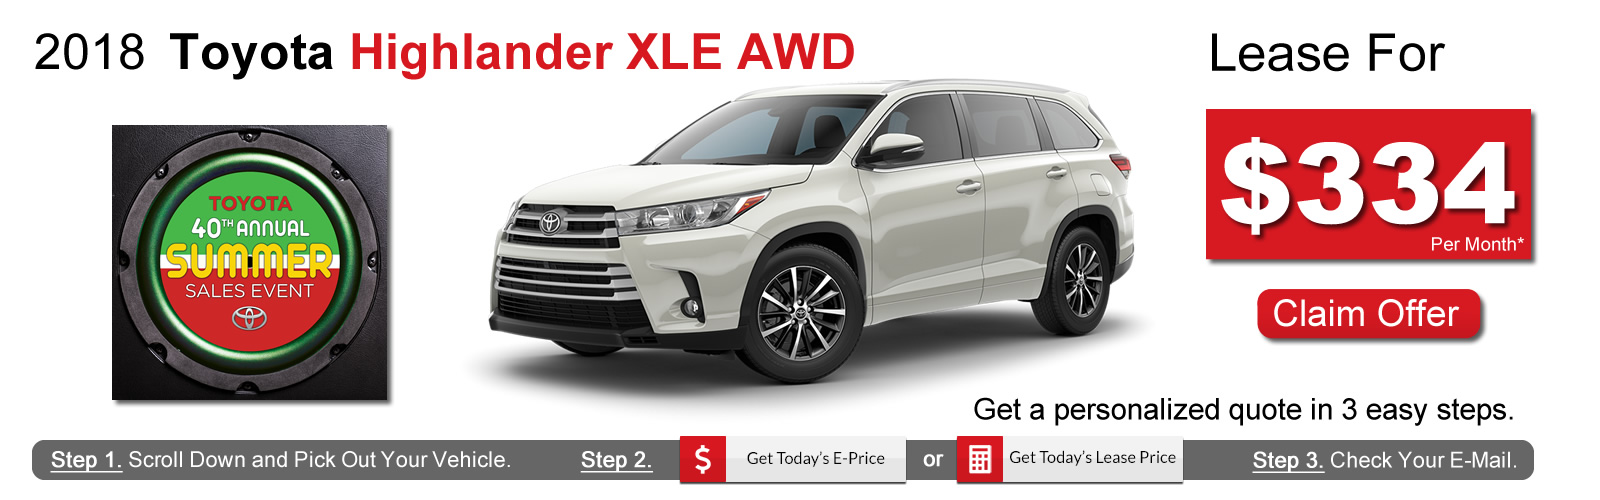 beautiful models deals lease new of toyota le highlander